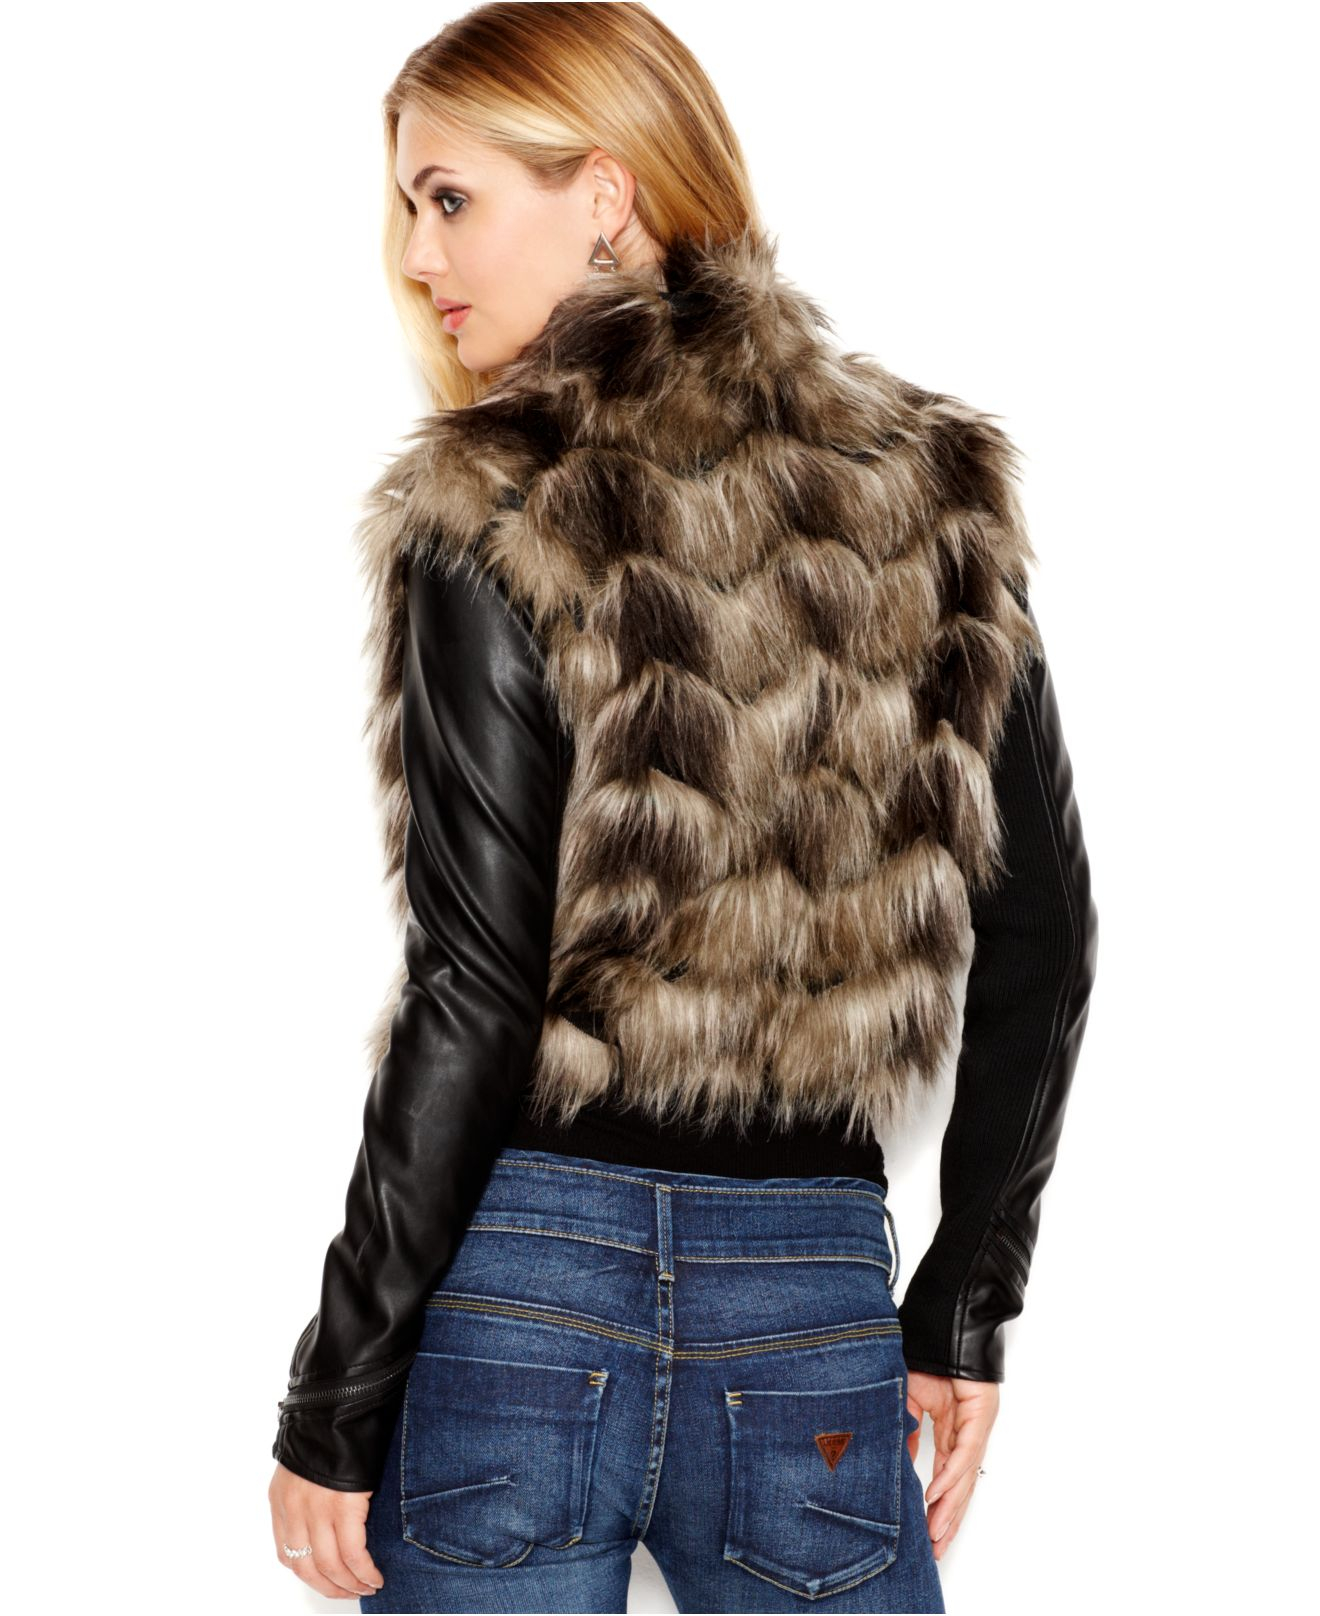 Find a great selection of vests for women at distrib-wjmx2fn9.ga Select from wool vests, down vests and more from the best brands, plus read customer reviews. Free shipping & returns.